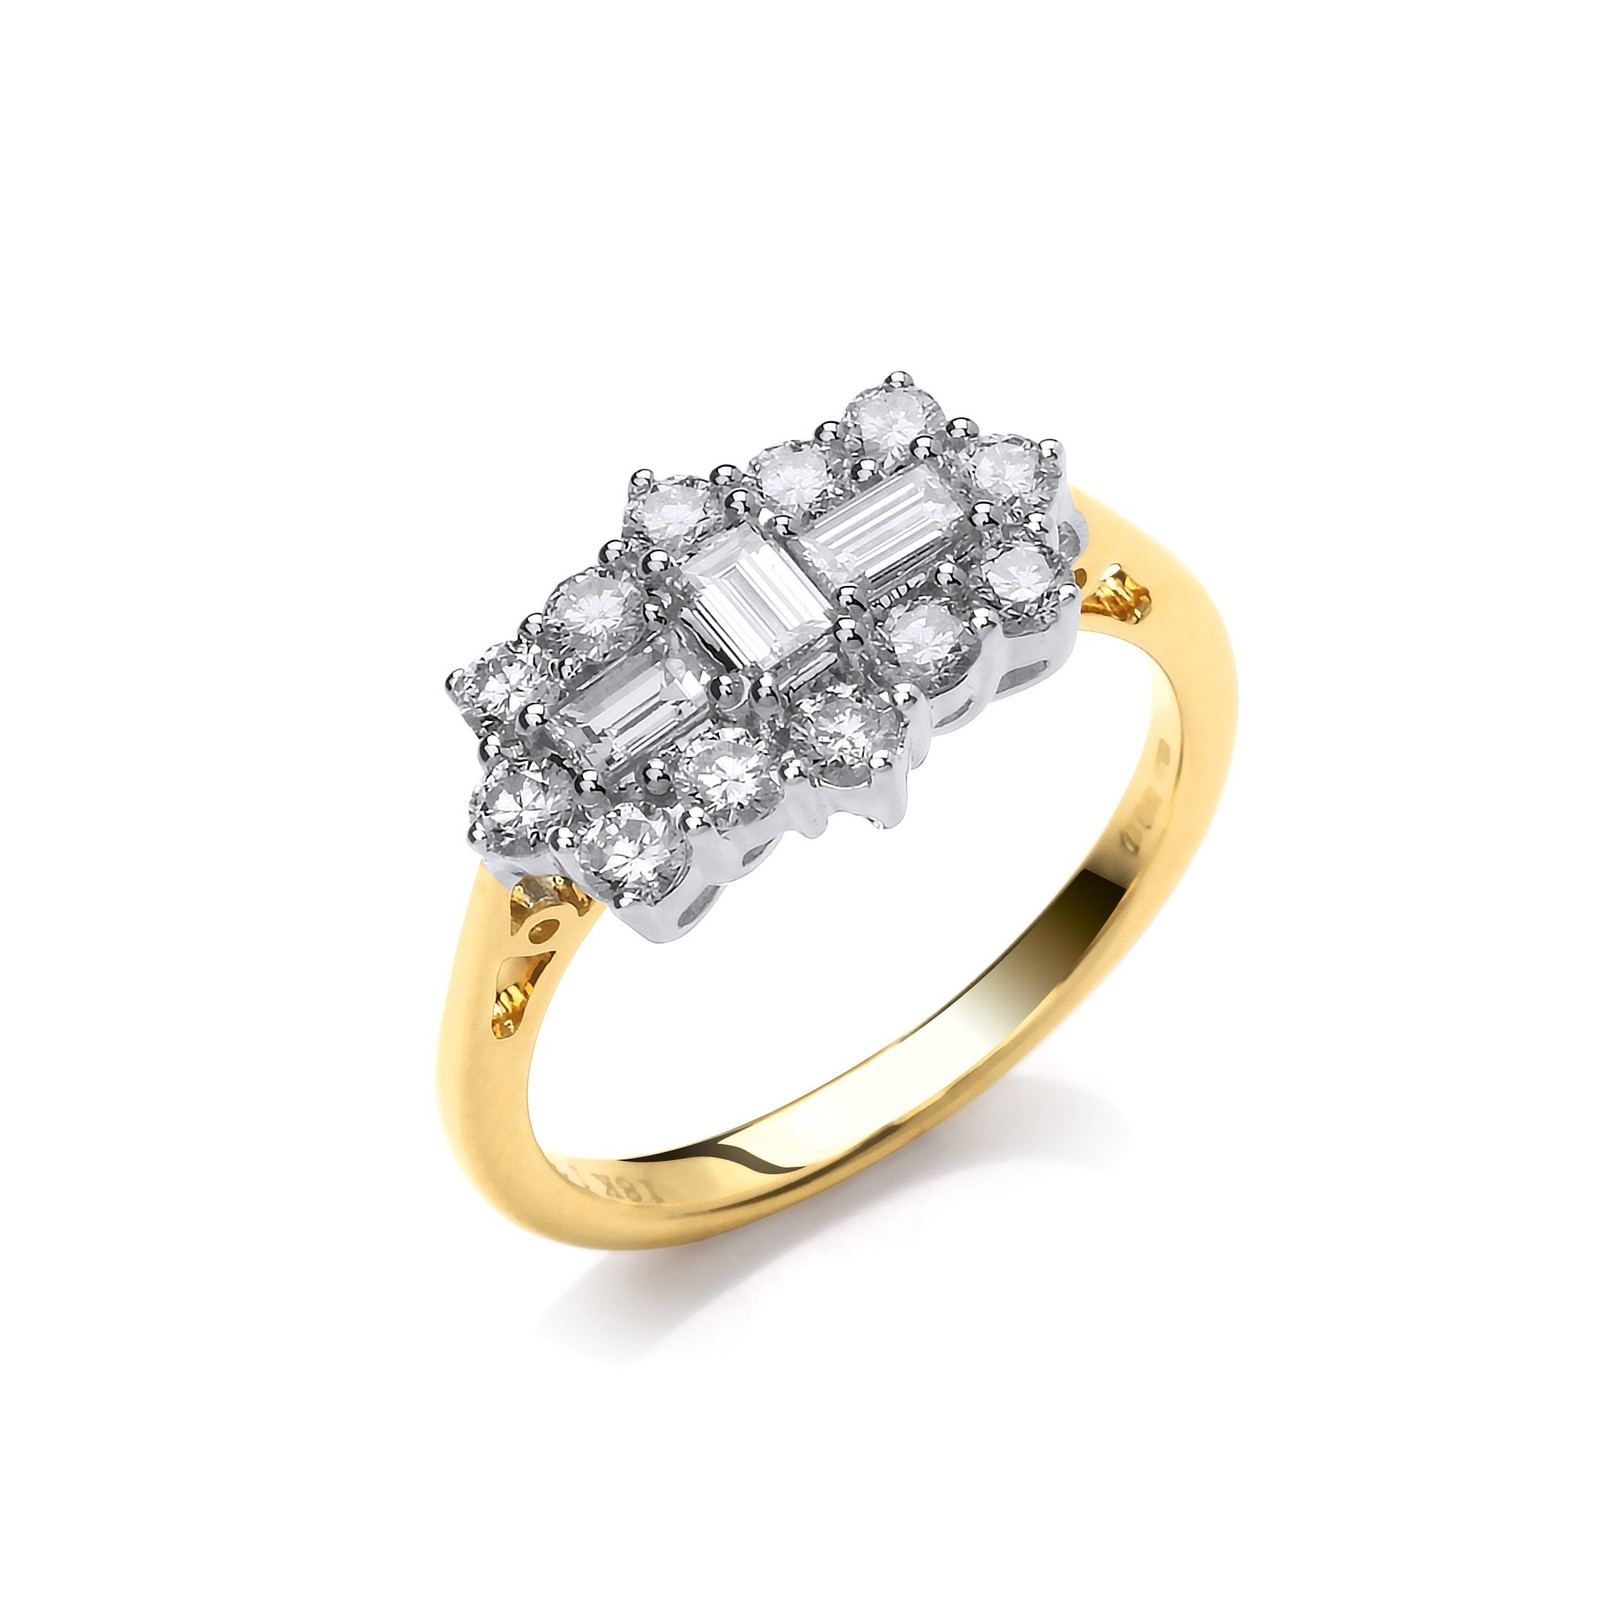 18ct Yellow Gold 1.00ctw Diamond Boat/Cluster Ring